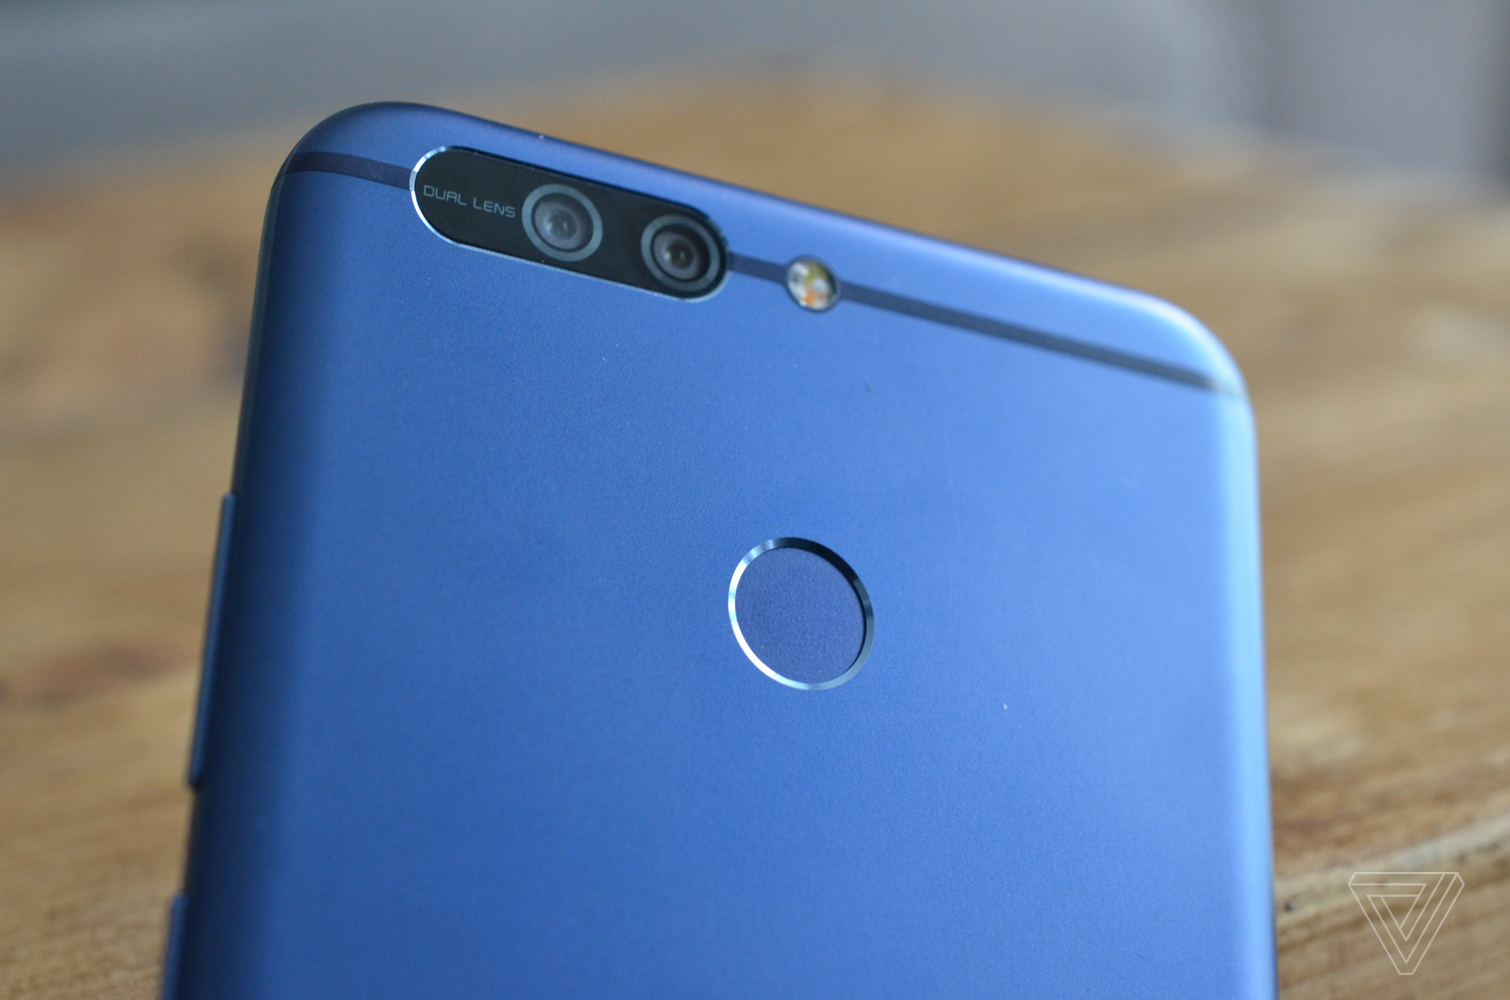 The Honor 8 Pro is a Huawei P10 with stronger specs and a